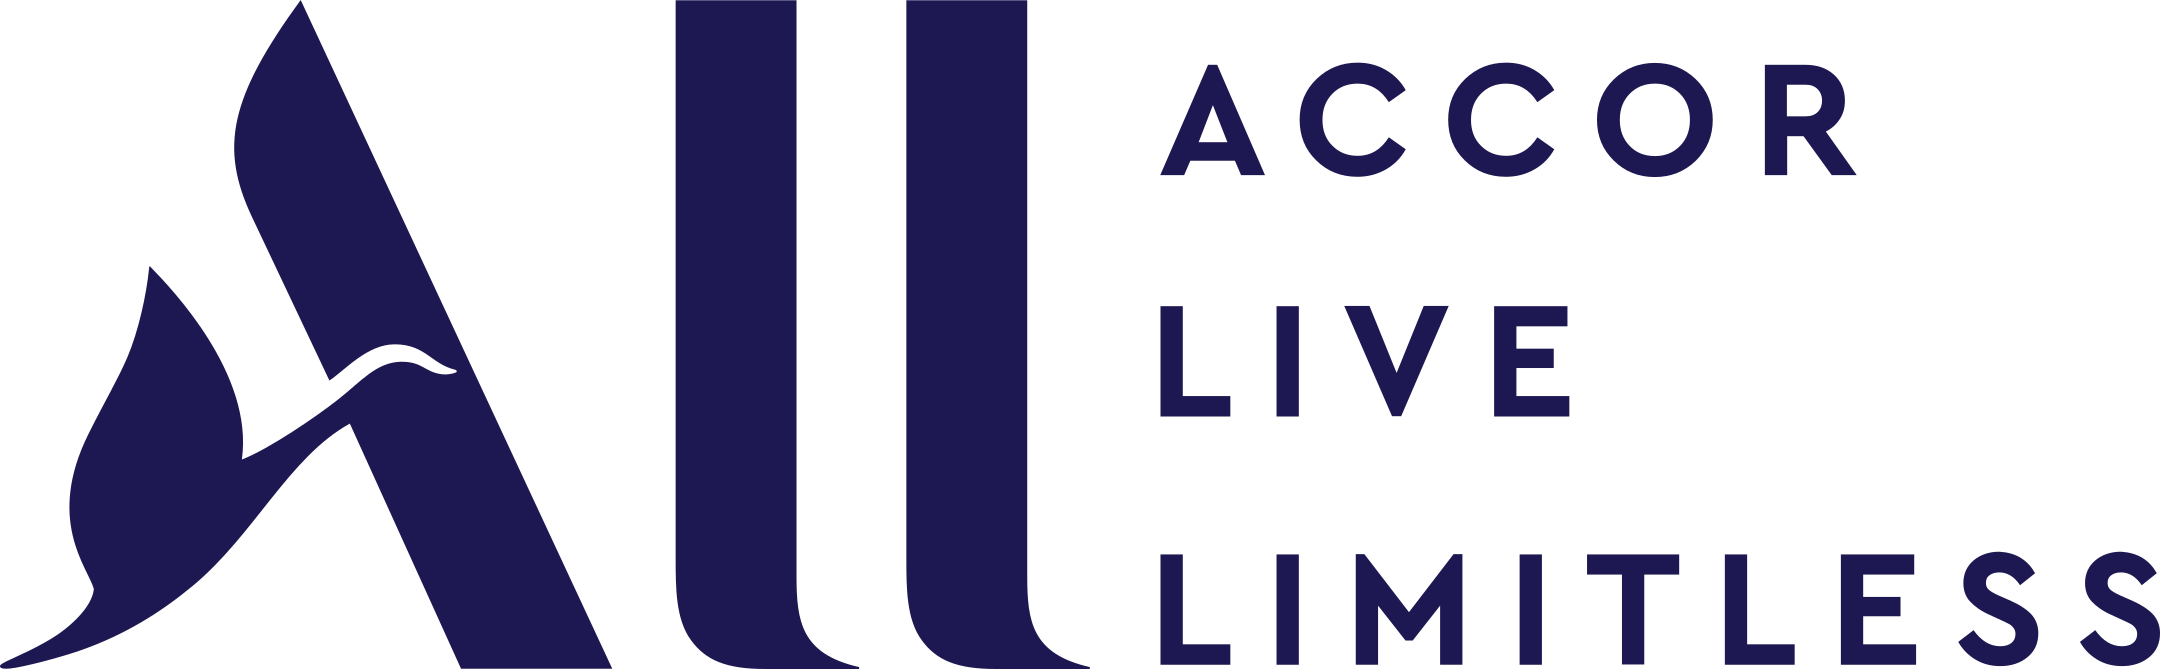 all-accor-live-limitless-logo-1